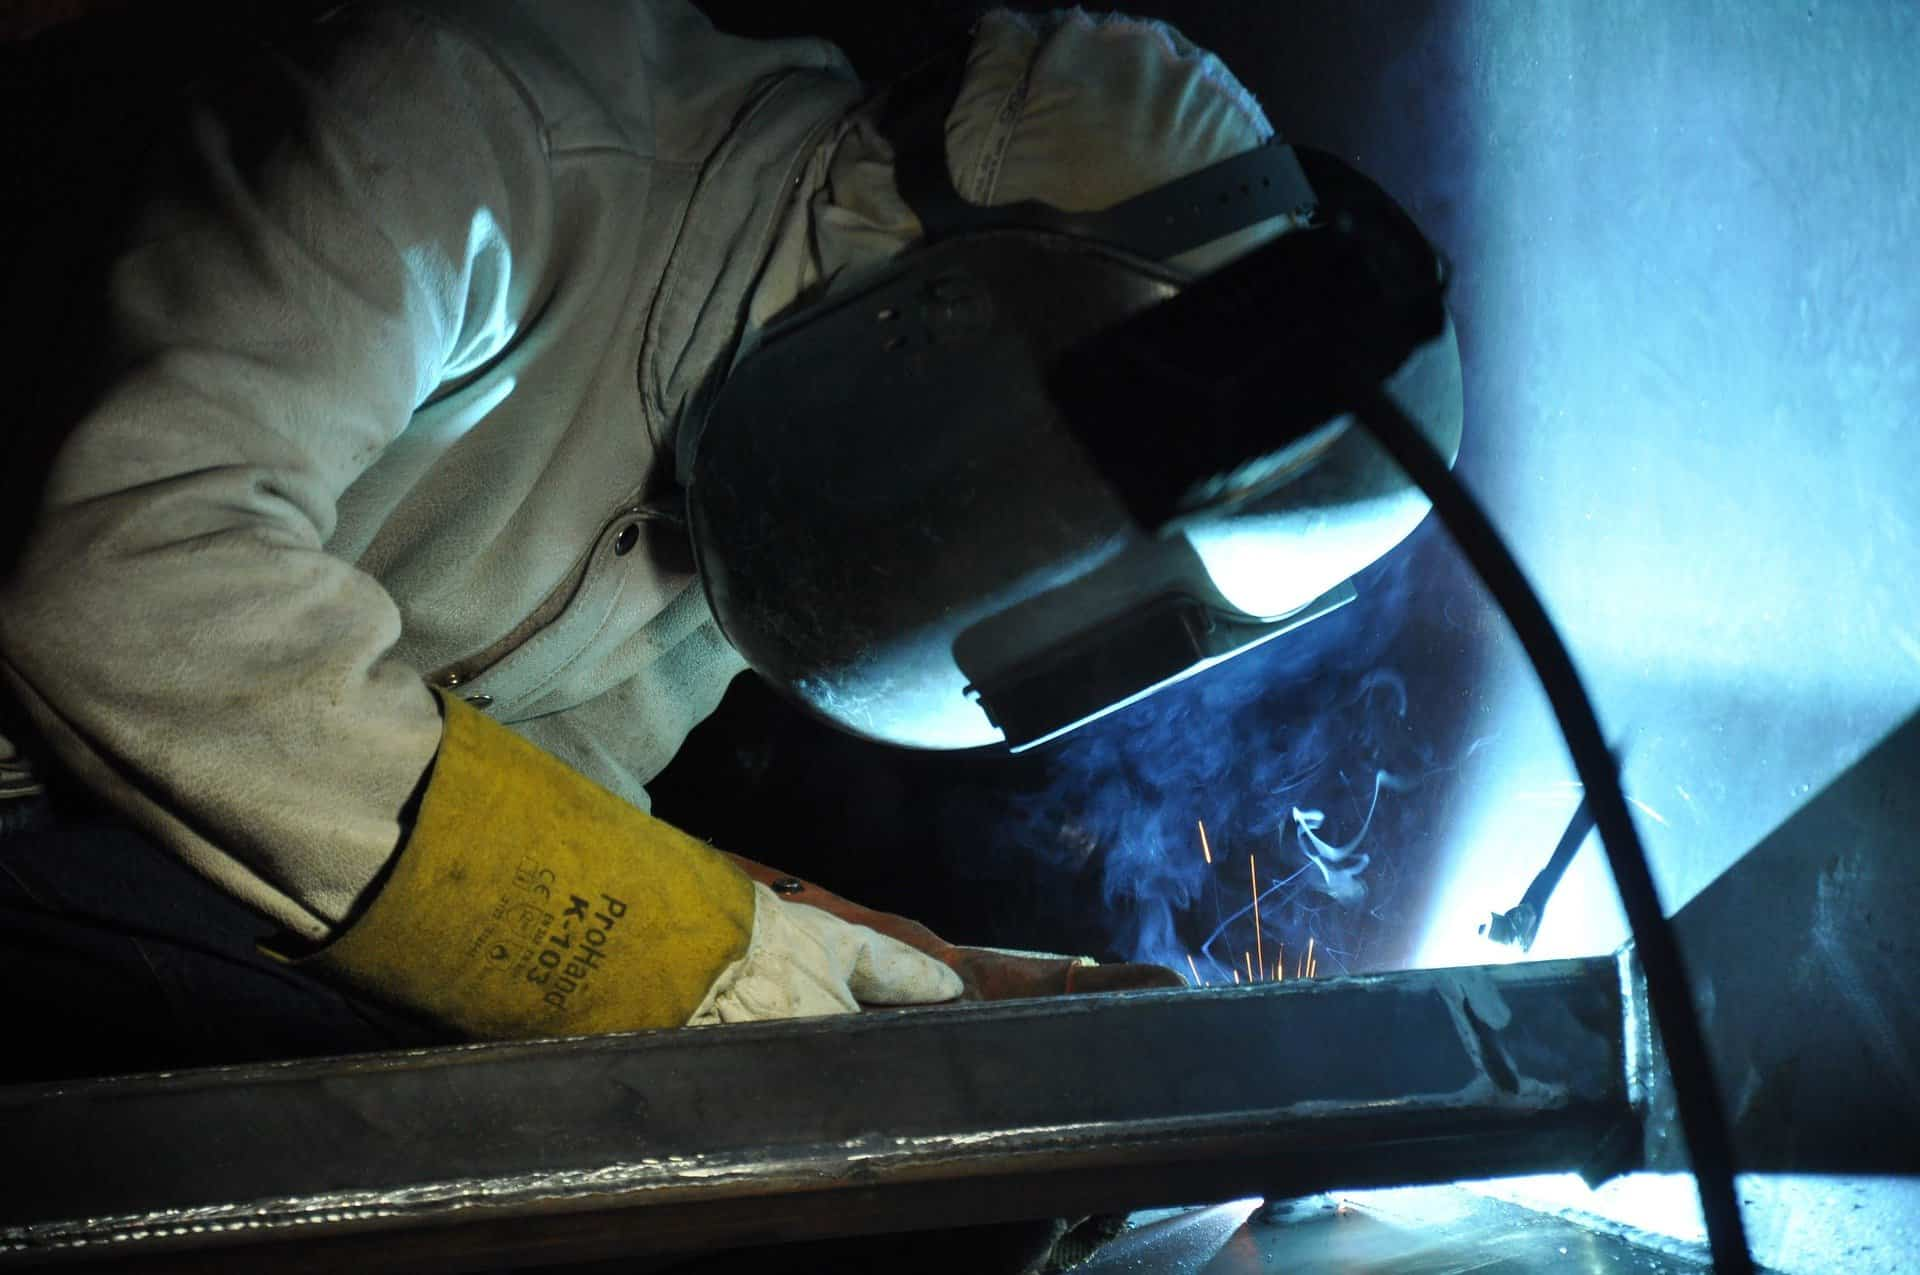 welding fume extraction arms